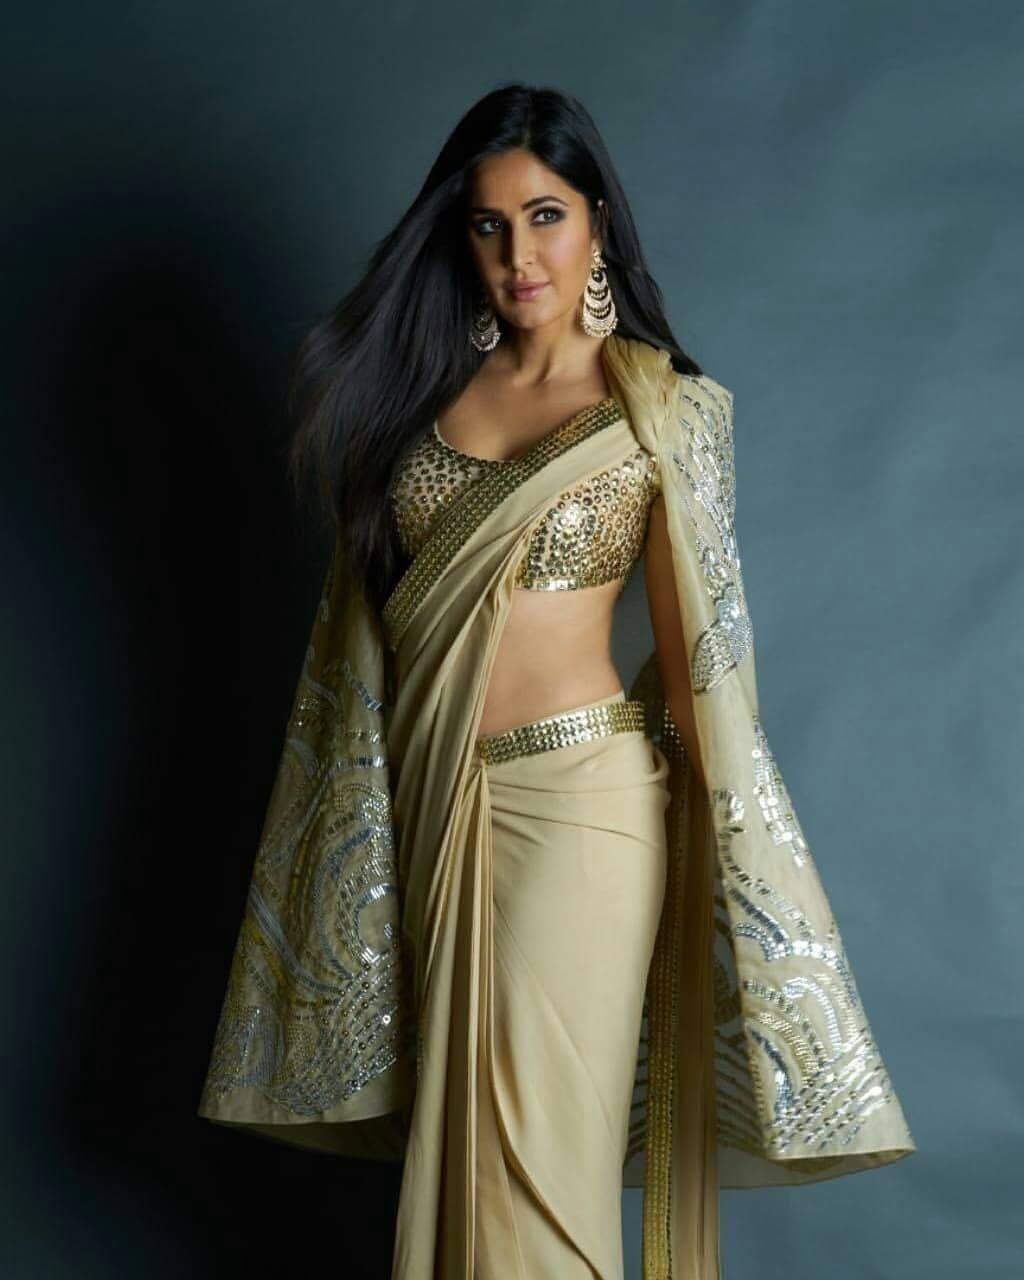 Celebrity Fashion | Saree and Jacket, Ever thought about 'em?